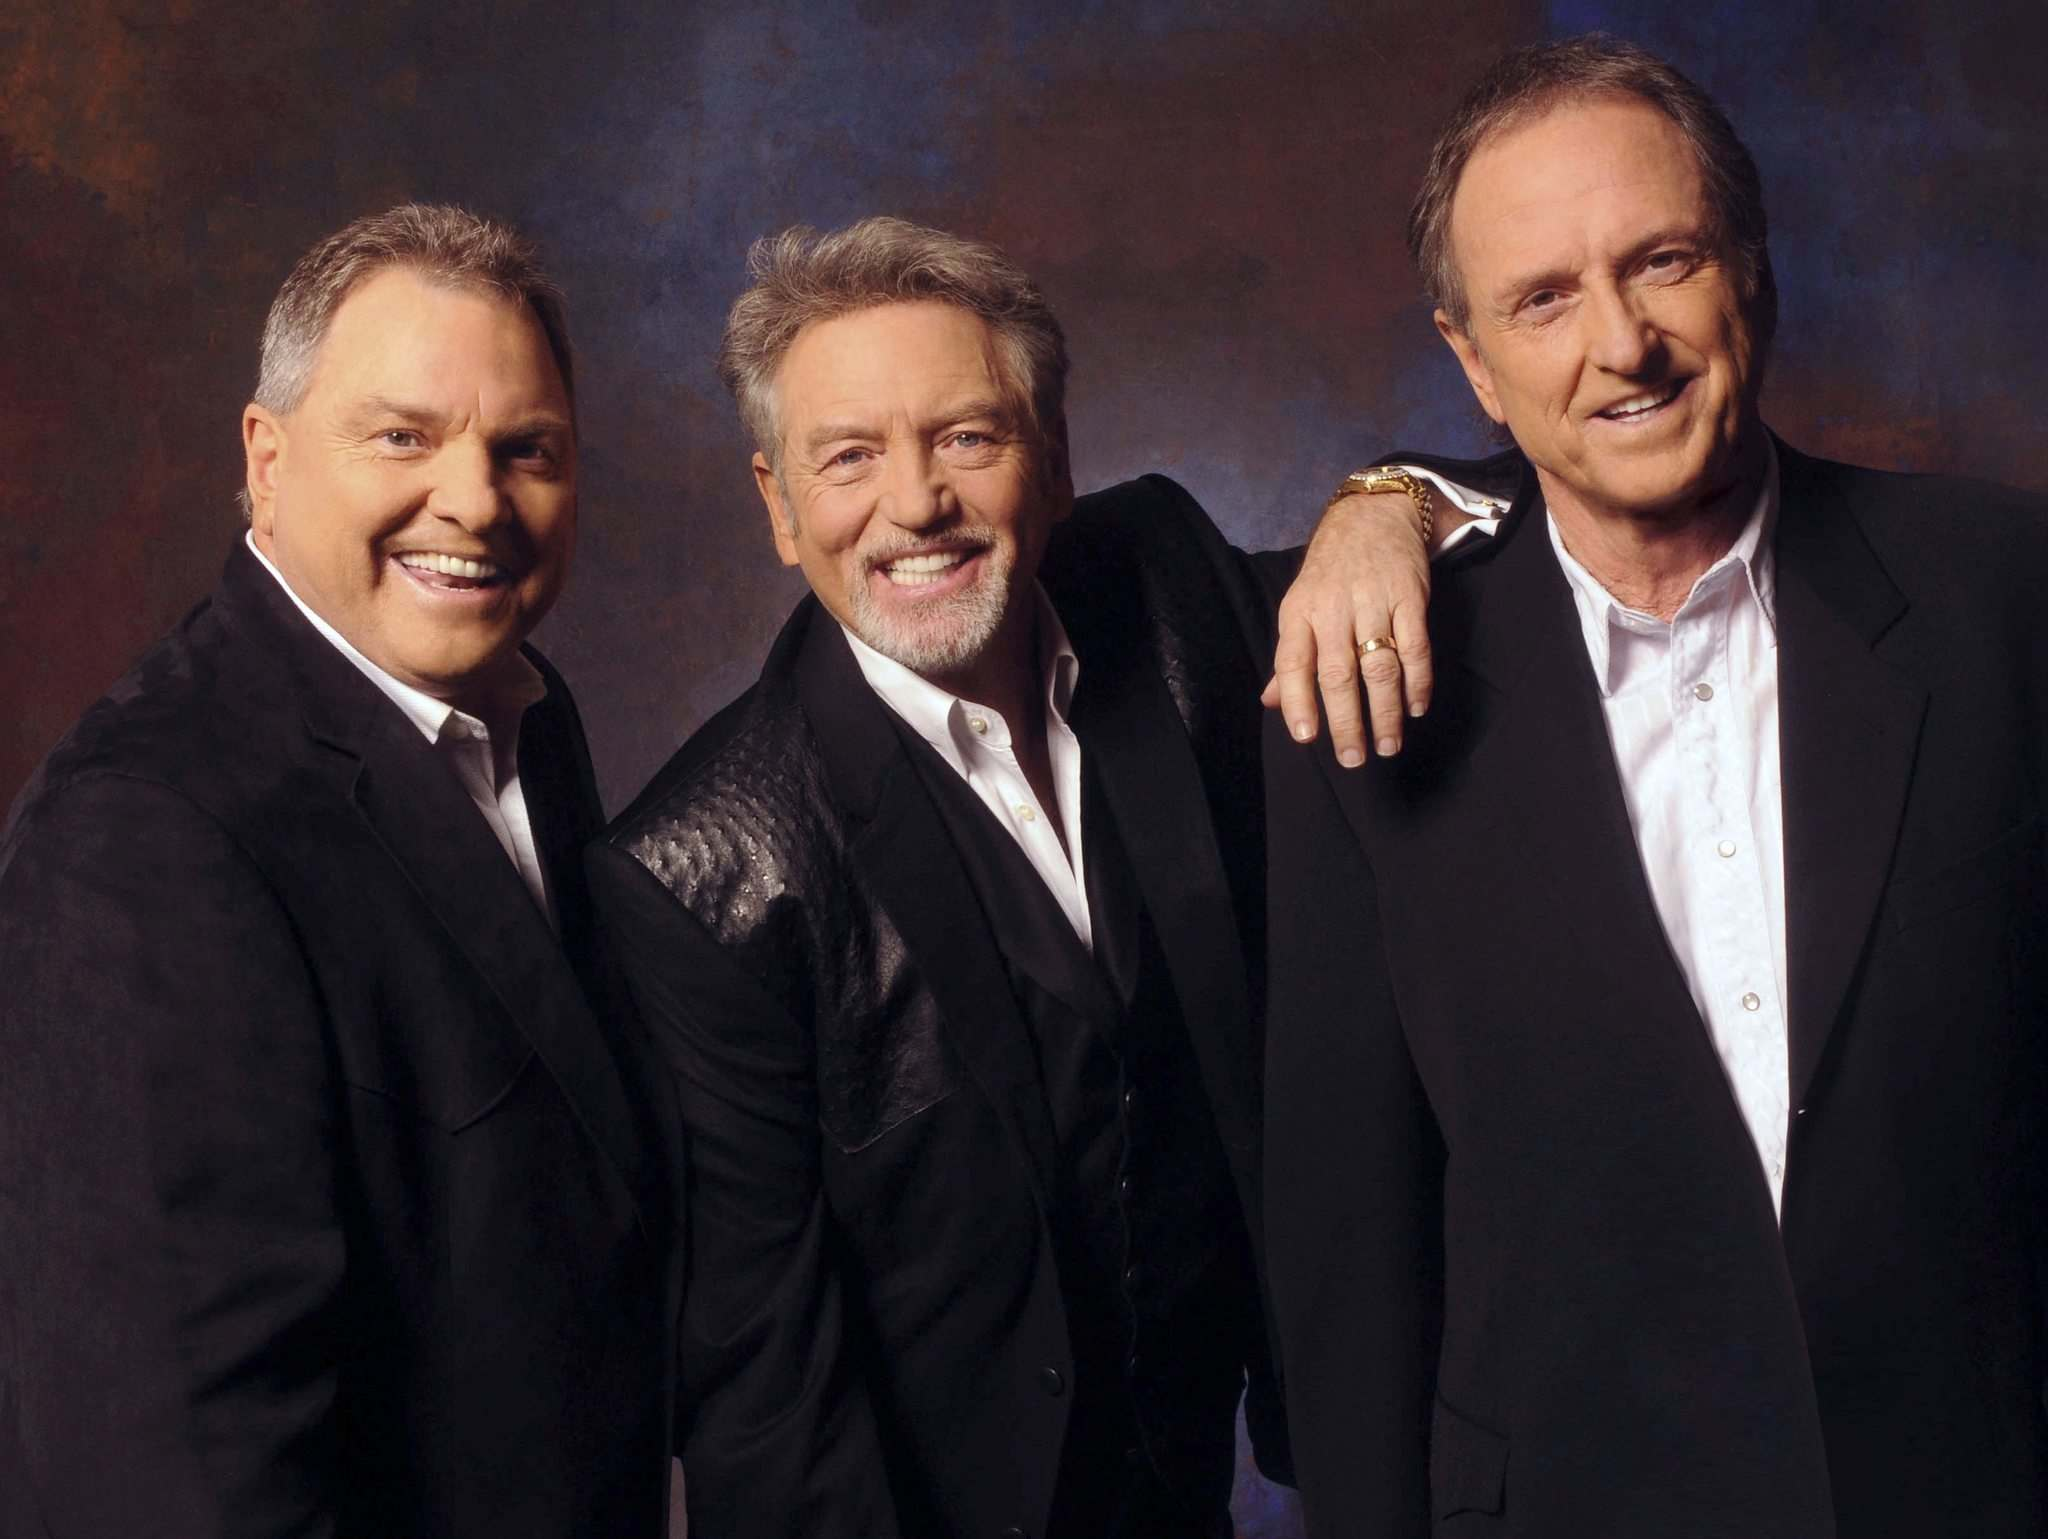 The Gatlin Brothers, Steve (from left), Larry and Rudy, perform at the Club Regent Event Centre on Wednesday, June 12. (Supplied photo)